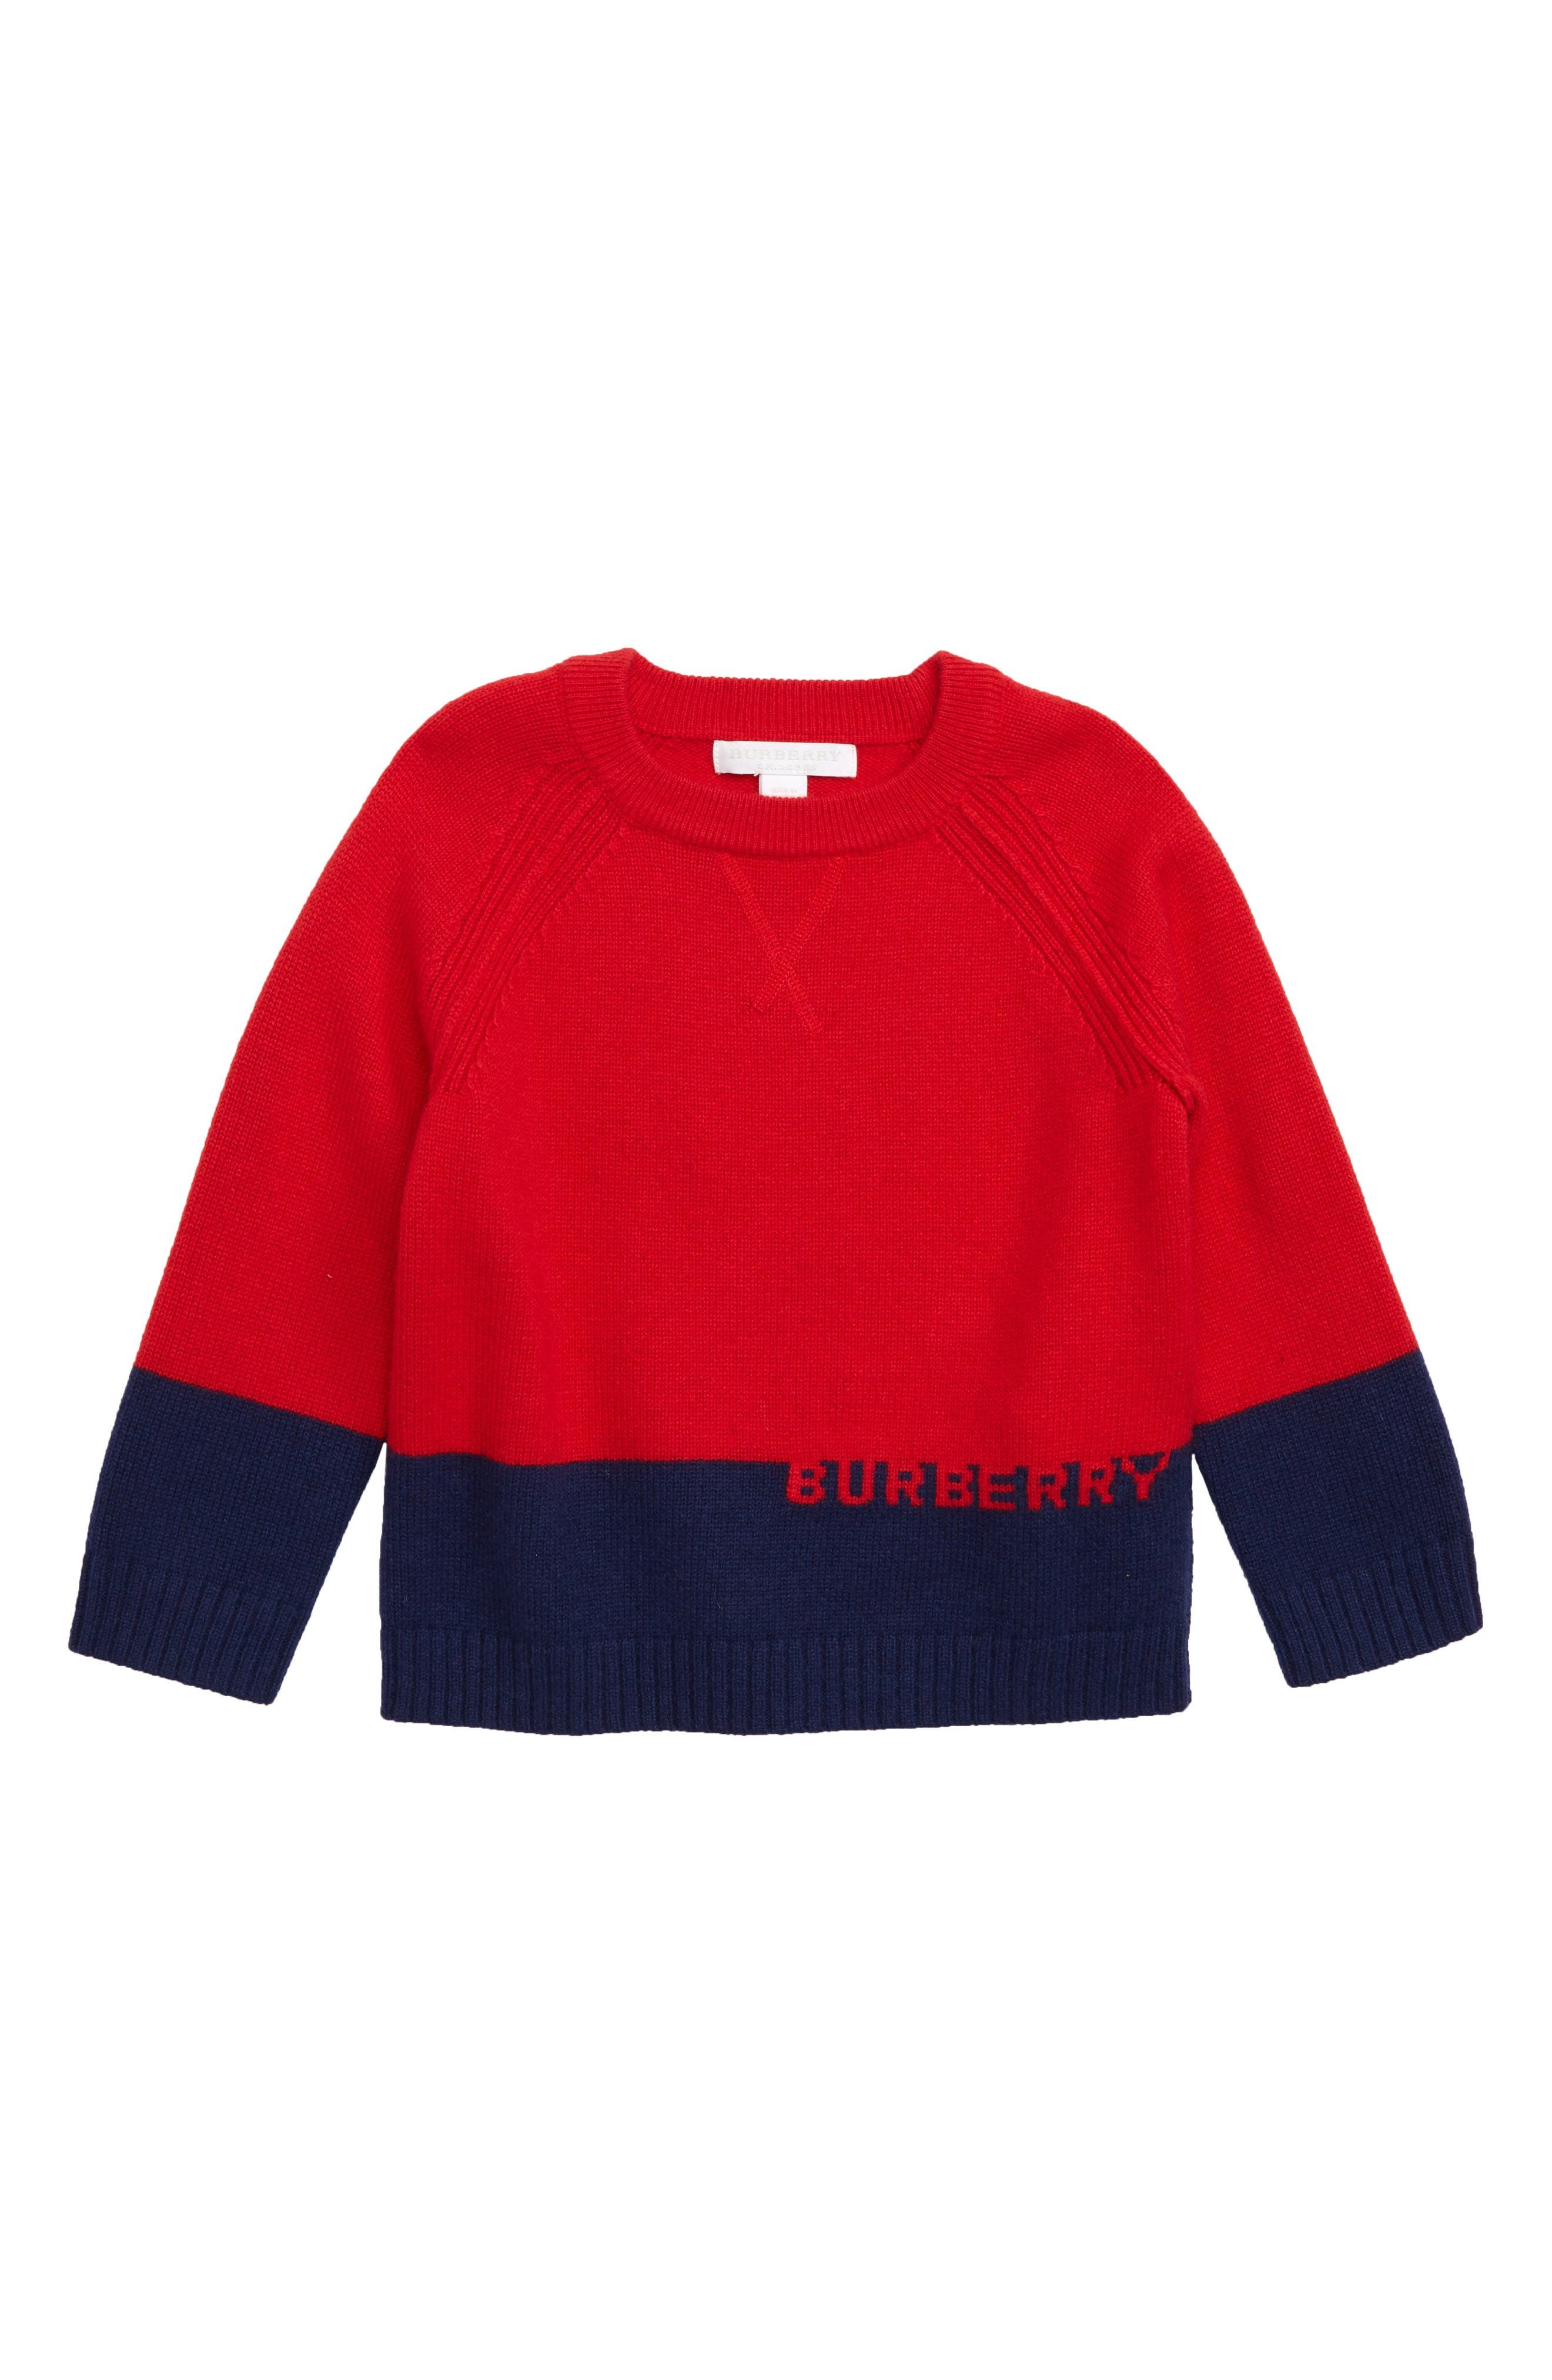 Boys Burberry Logo Intarsia Pullover Sweater Size 12Y  Red